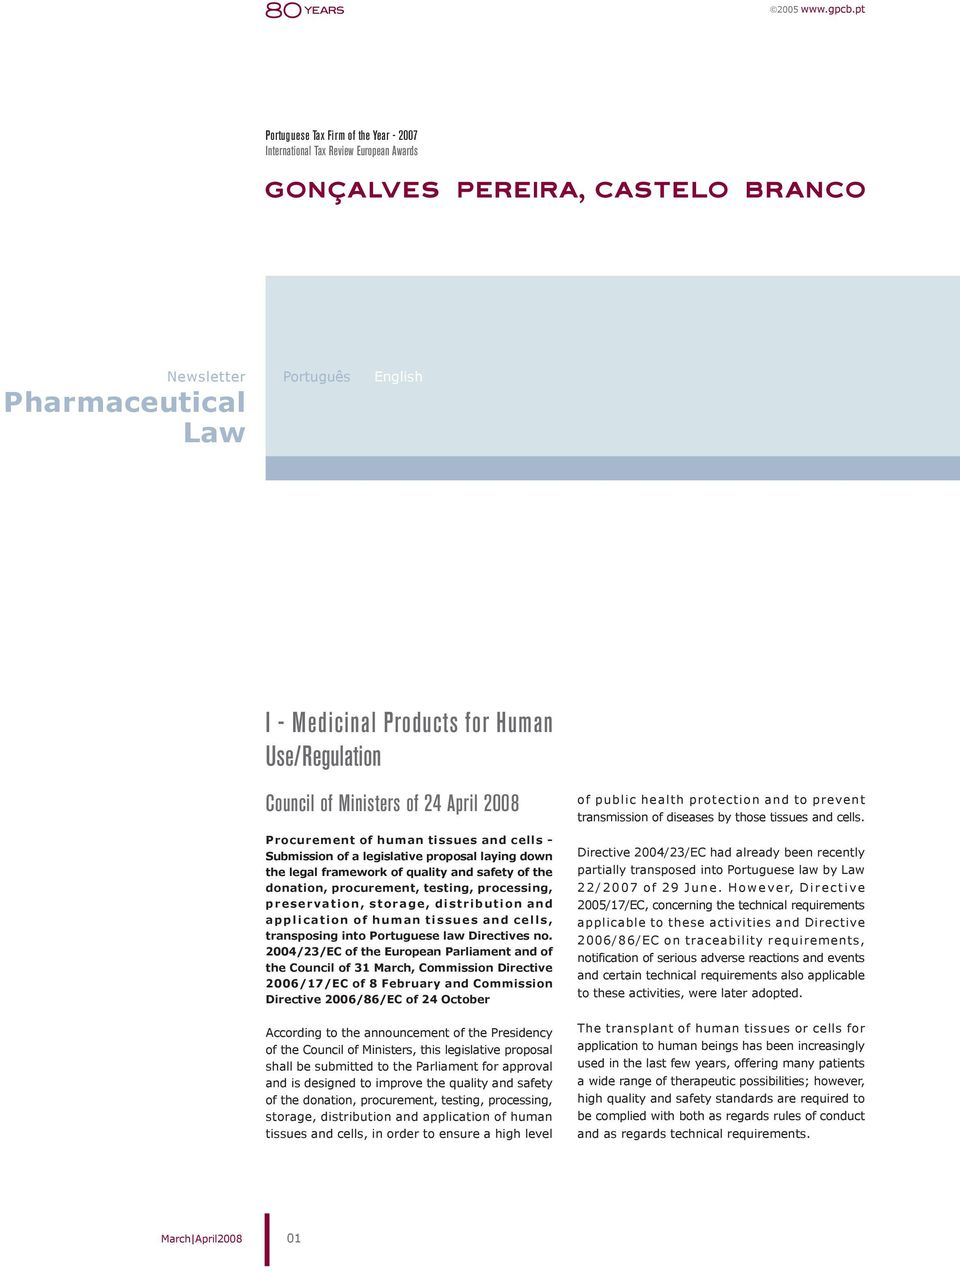 preservation, storage, distribution and application of human tissues and cells, transposing into Portuguese law Directives no.